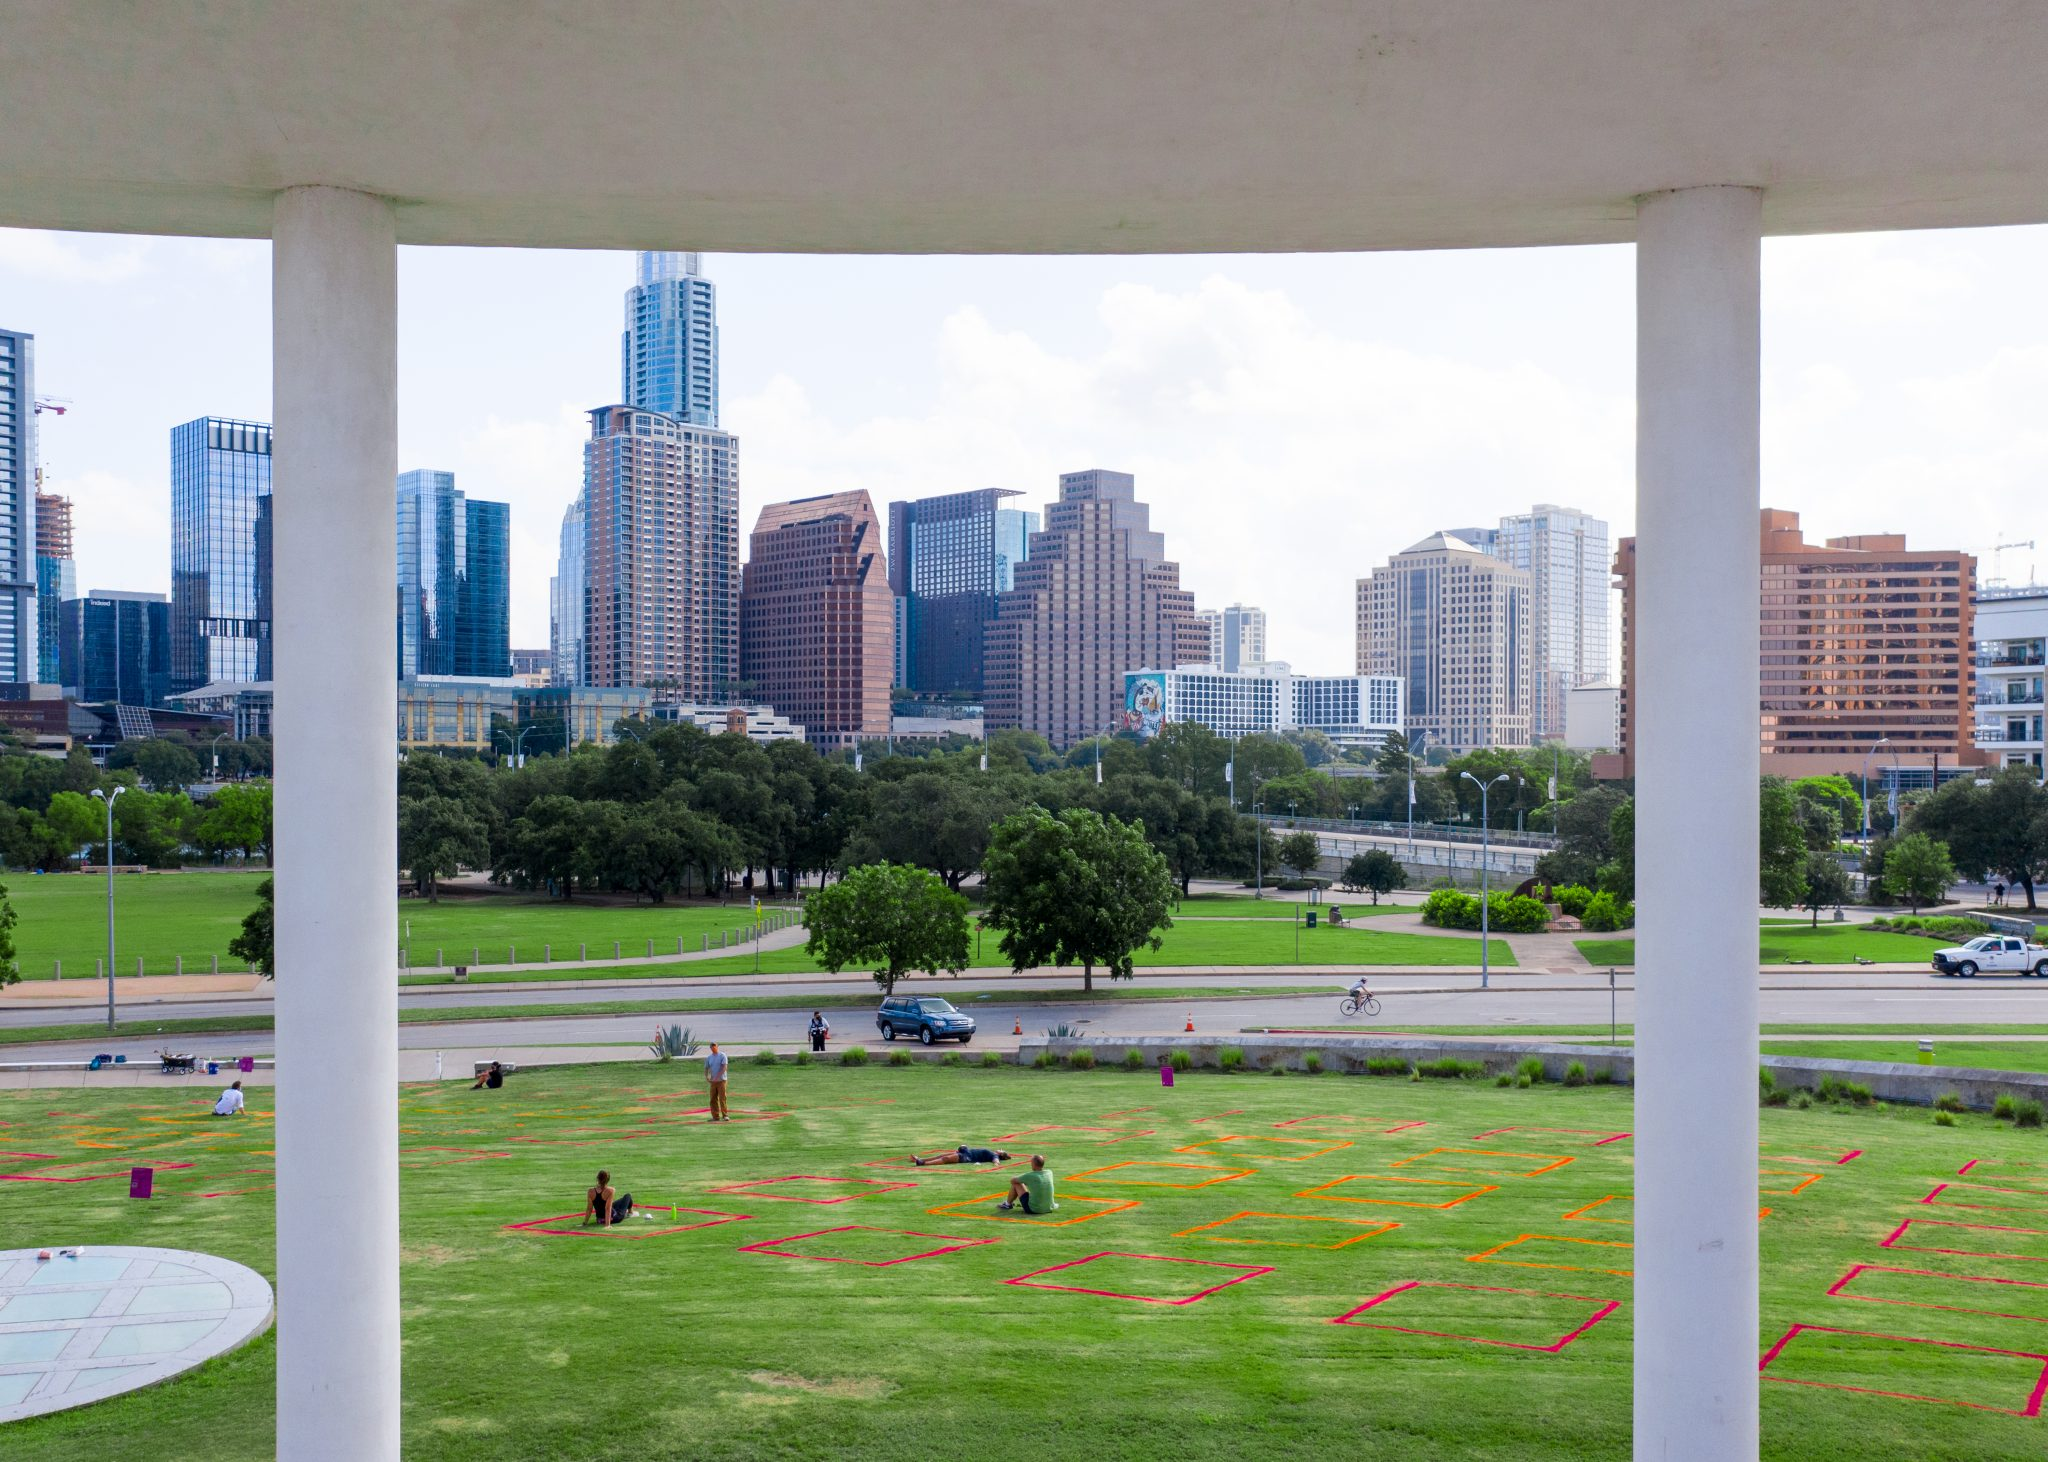 The lawn at the Long Center was a site for P A R K S P A C E and hosted several outdoor programs last summer. Photo by Ryan Conway, courtesy Gensler and Austin Foundation for Architecture.